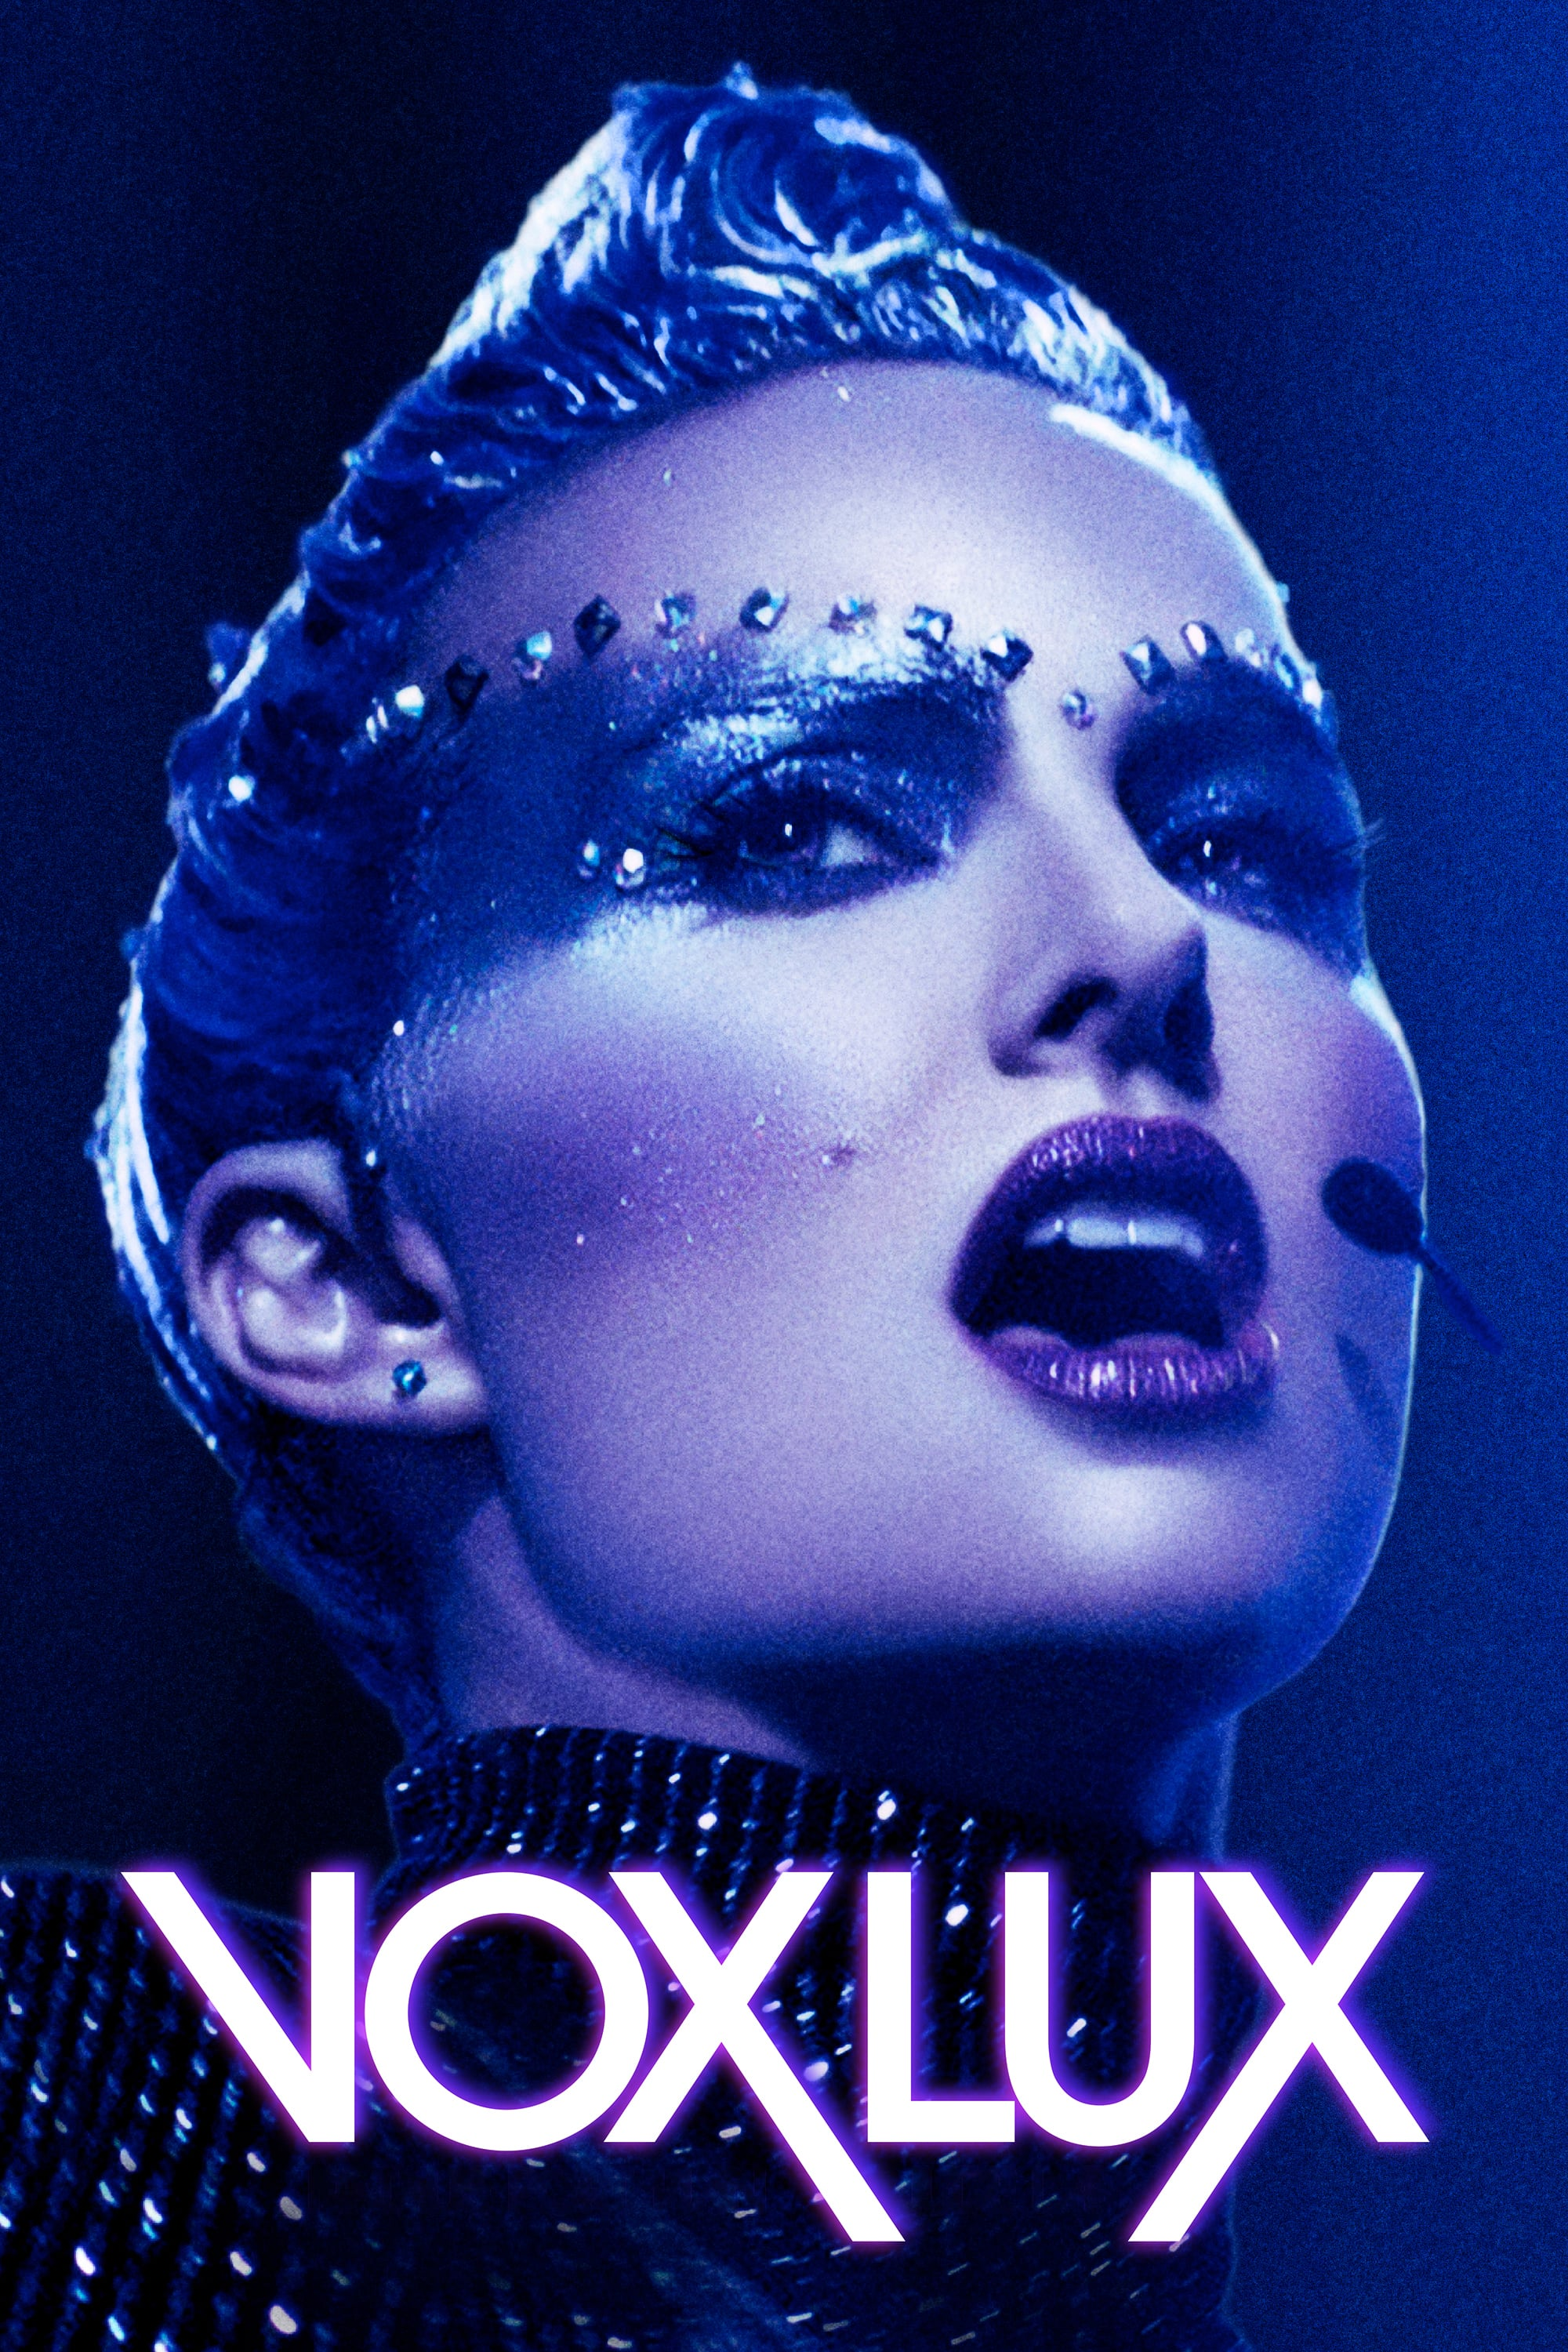 Vox Lux Movie Poster - ID: 237834 - Image Abyss